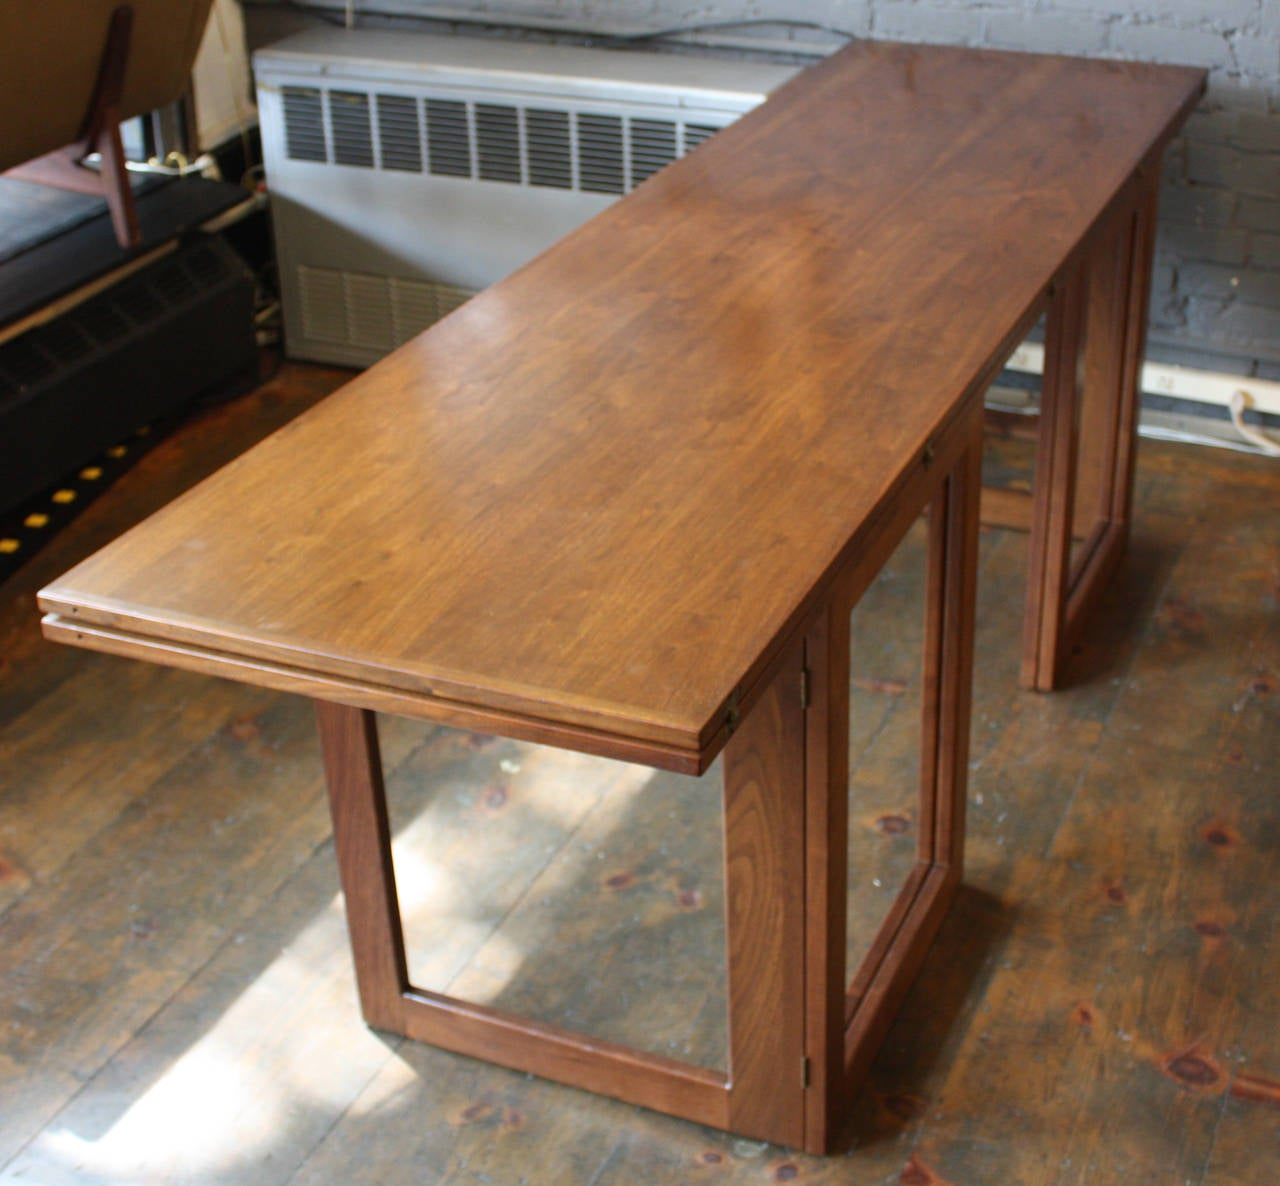 American modern walnut console or convertible dining table with american modern walnut console or convertible dining table with gate legs 2 geotapseo Images